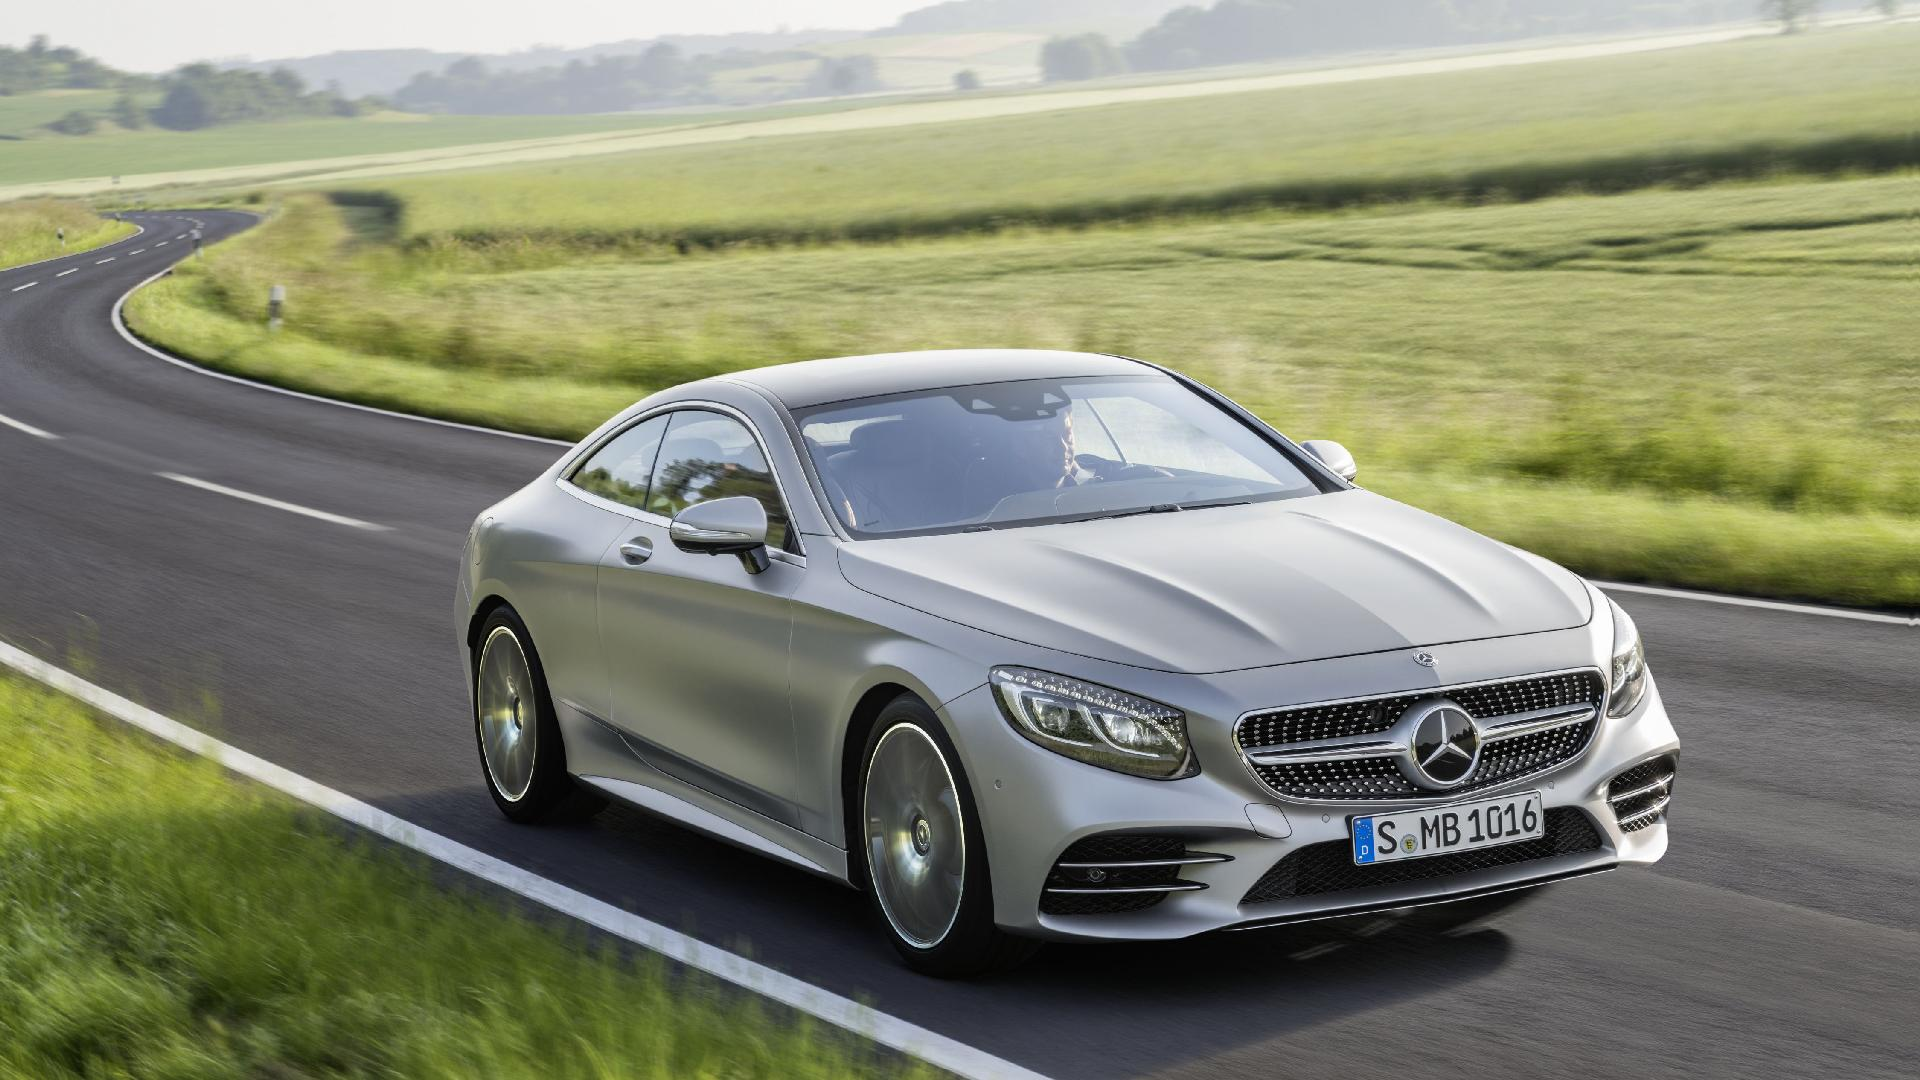 MERCEDES-BENZ S 450 Coupe 4-Matic 9G-TRONIC